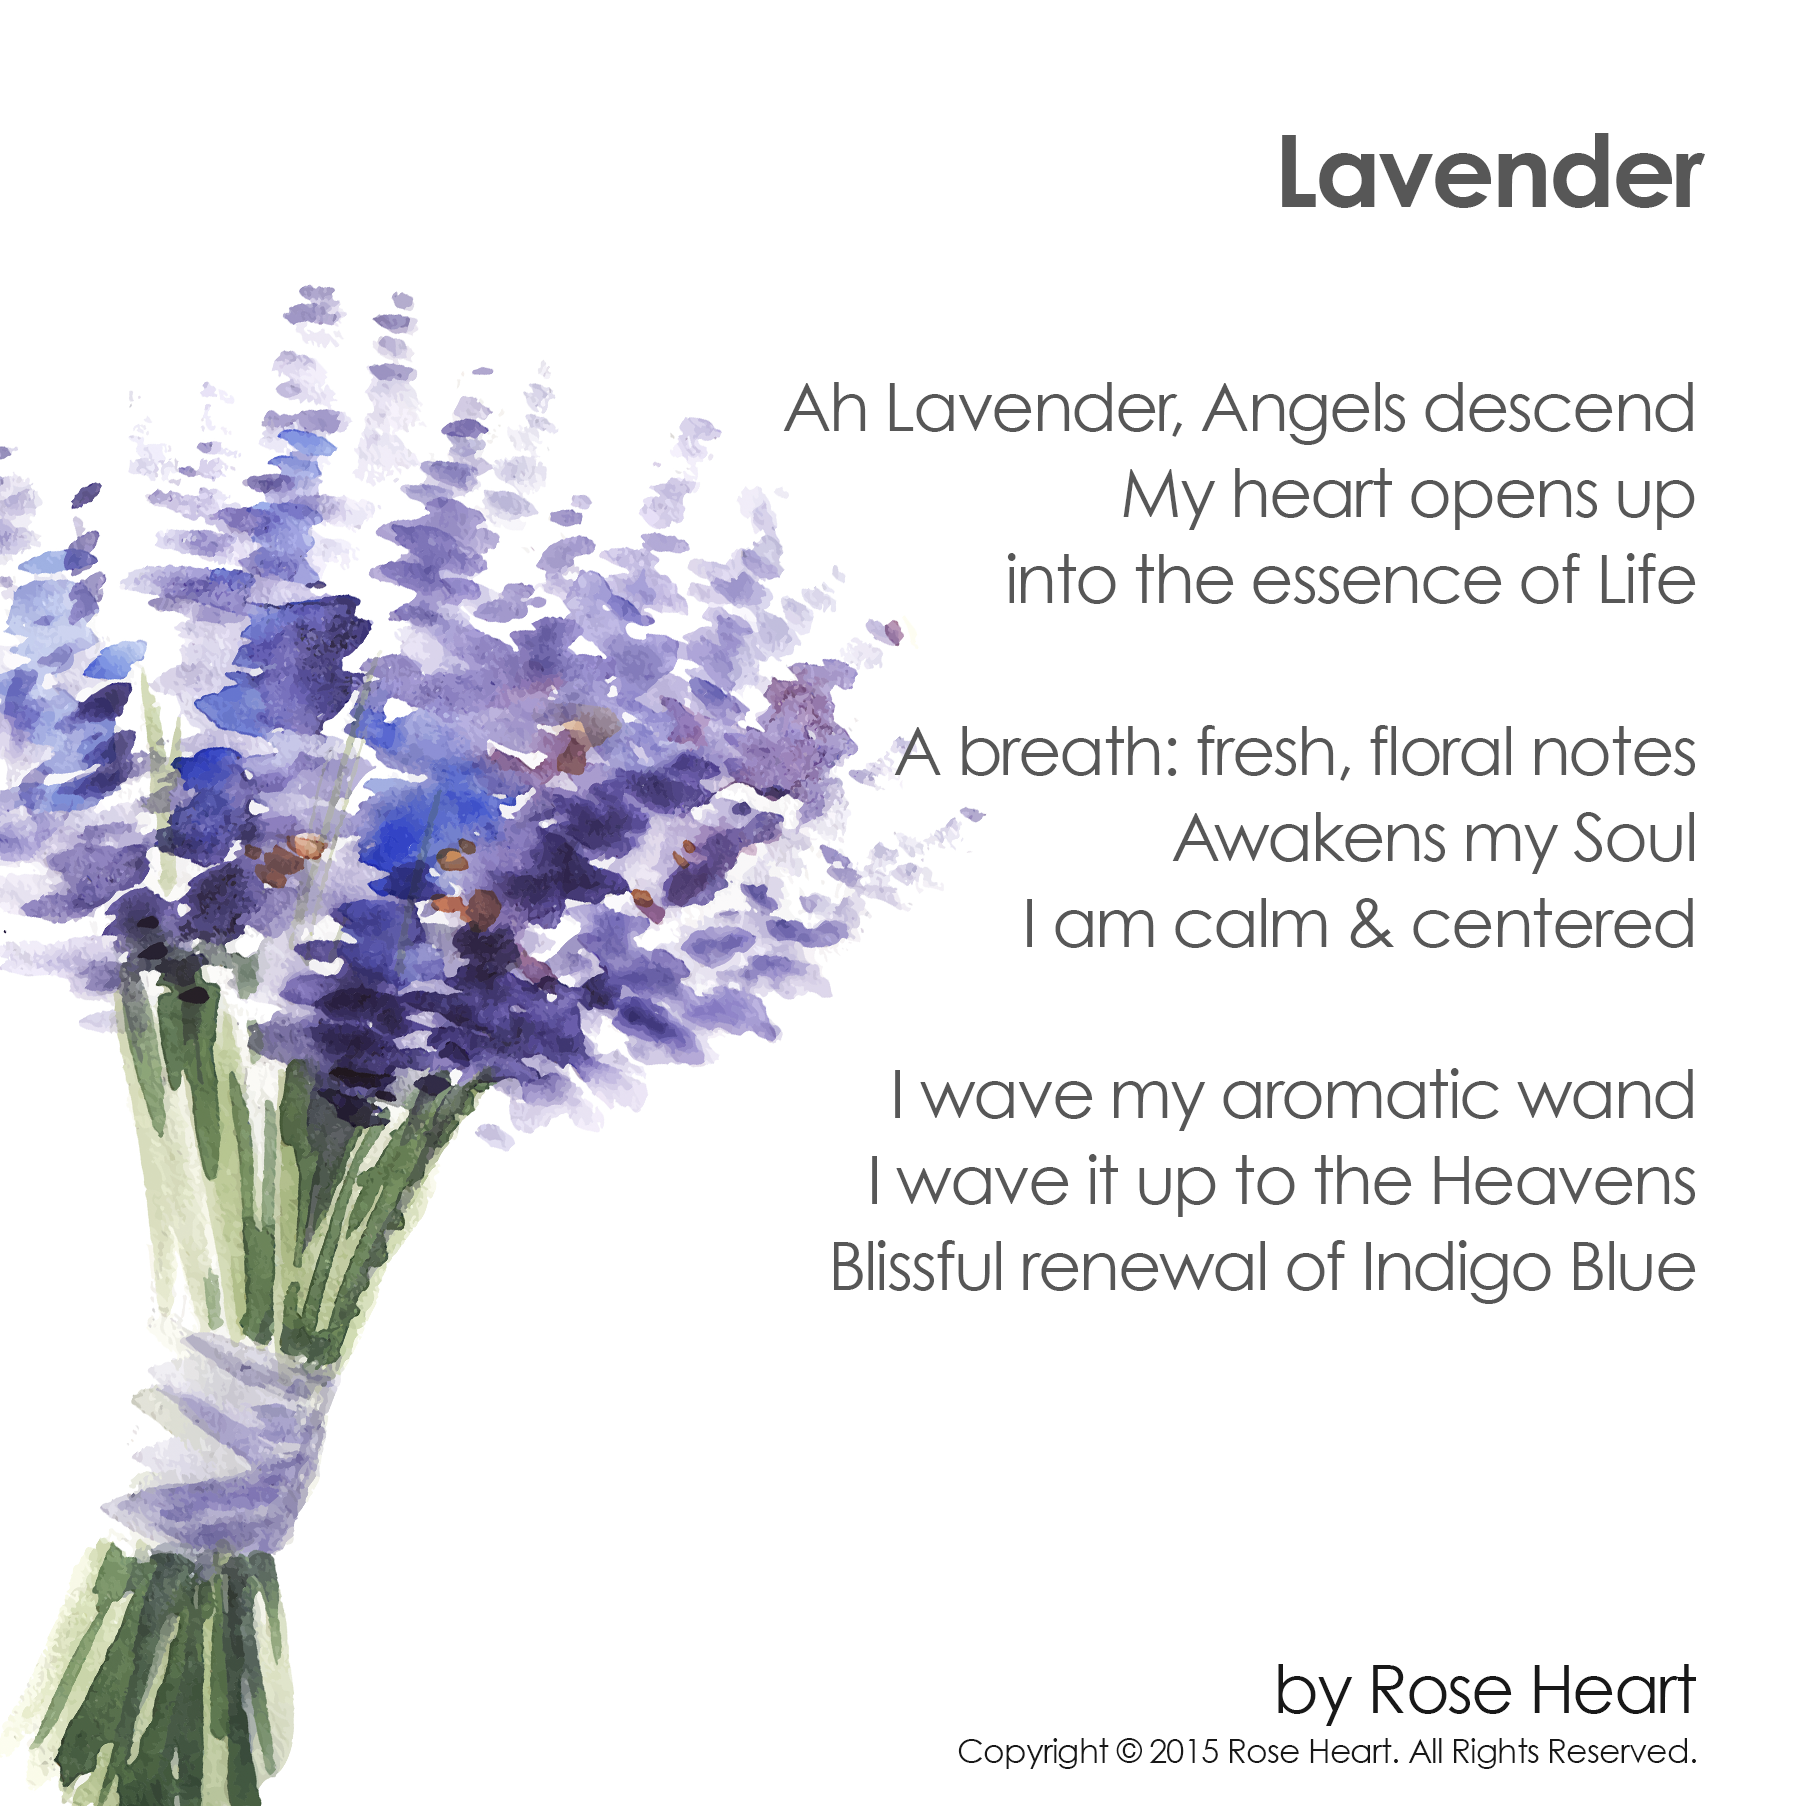 Enjoy This Spiritual Poem About Lavender Let It Soothe Your Spirit In The Same Way Lavender Essential Oil Does Spiritual Poems Lavender Quotes Lavender